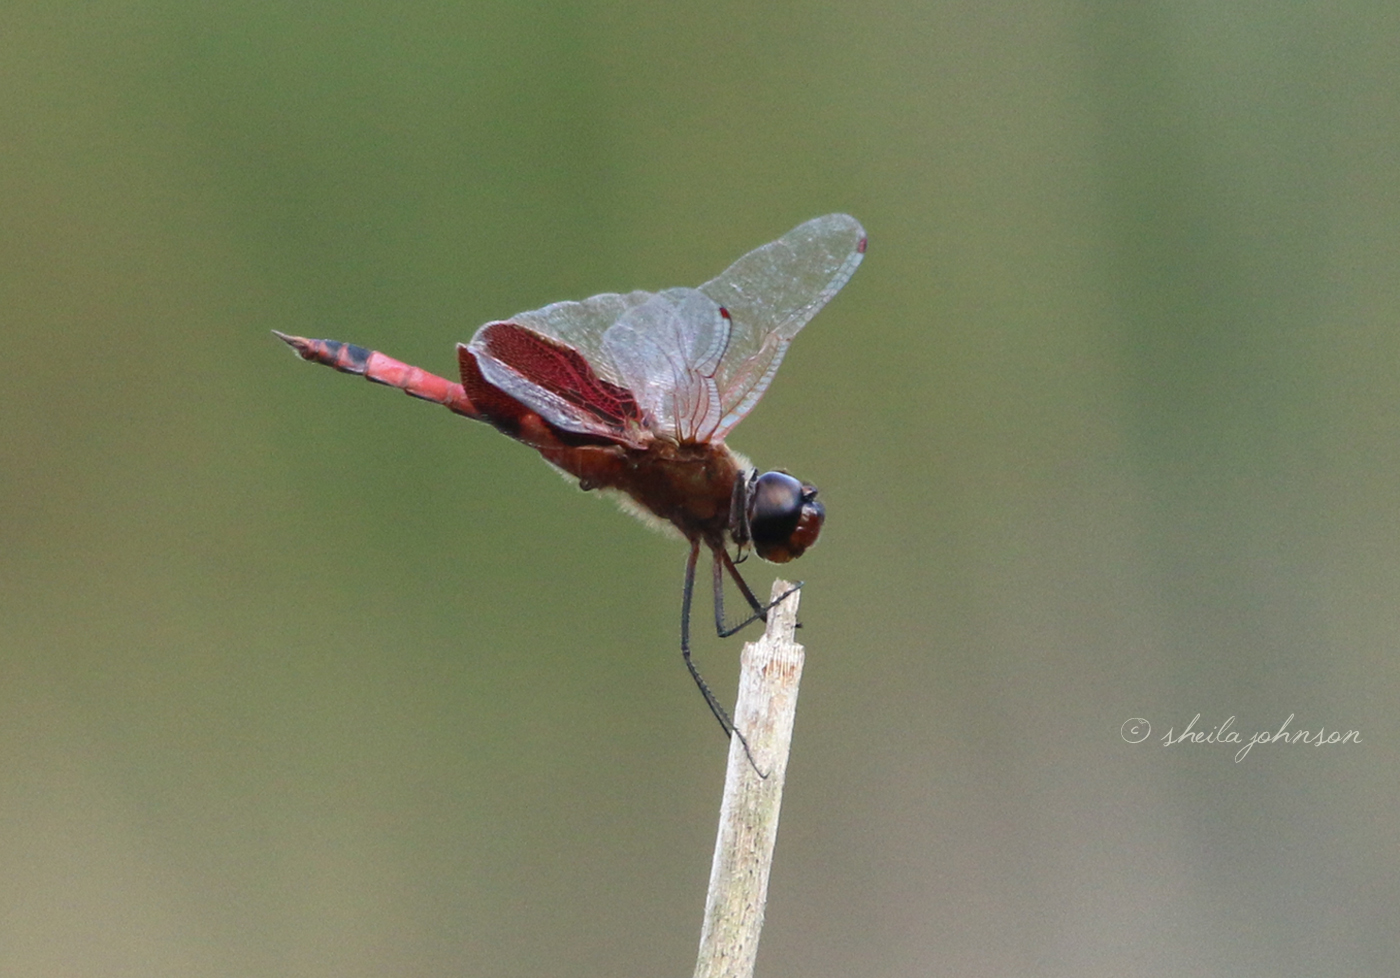 This Roseate Skimmer Red Dragonfly Knows To Hang On Loosely, But Don't Let Go, Just Like 38 Special!